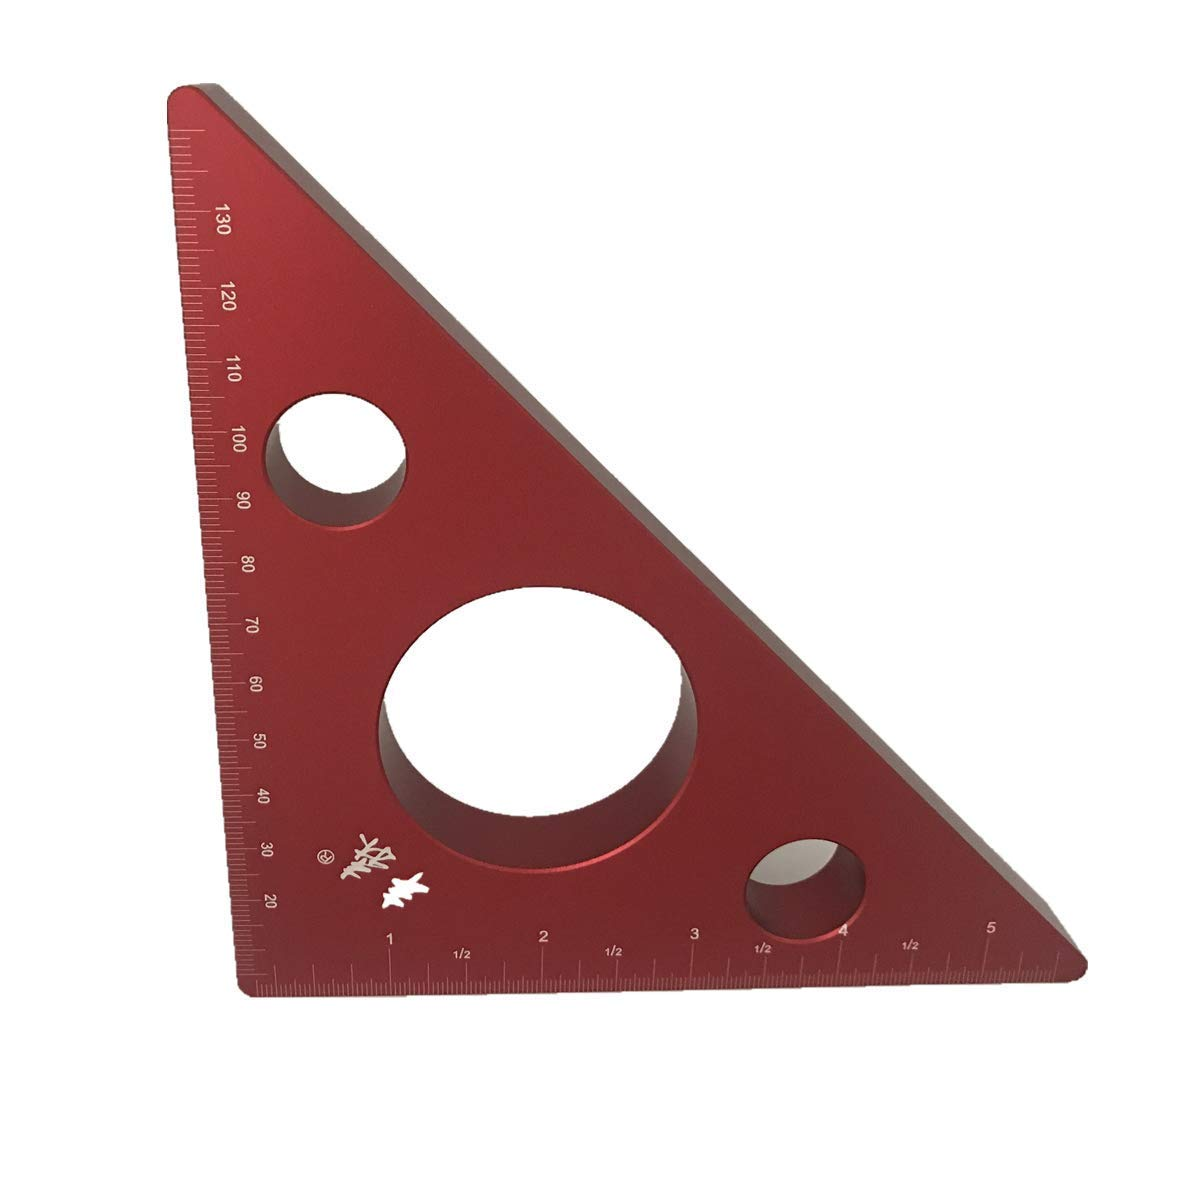 Aluminum Alloy Speed Square Protractor Miter Framing Tri-square Line Scriber Saw Guide Triangle Ruler